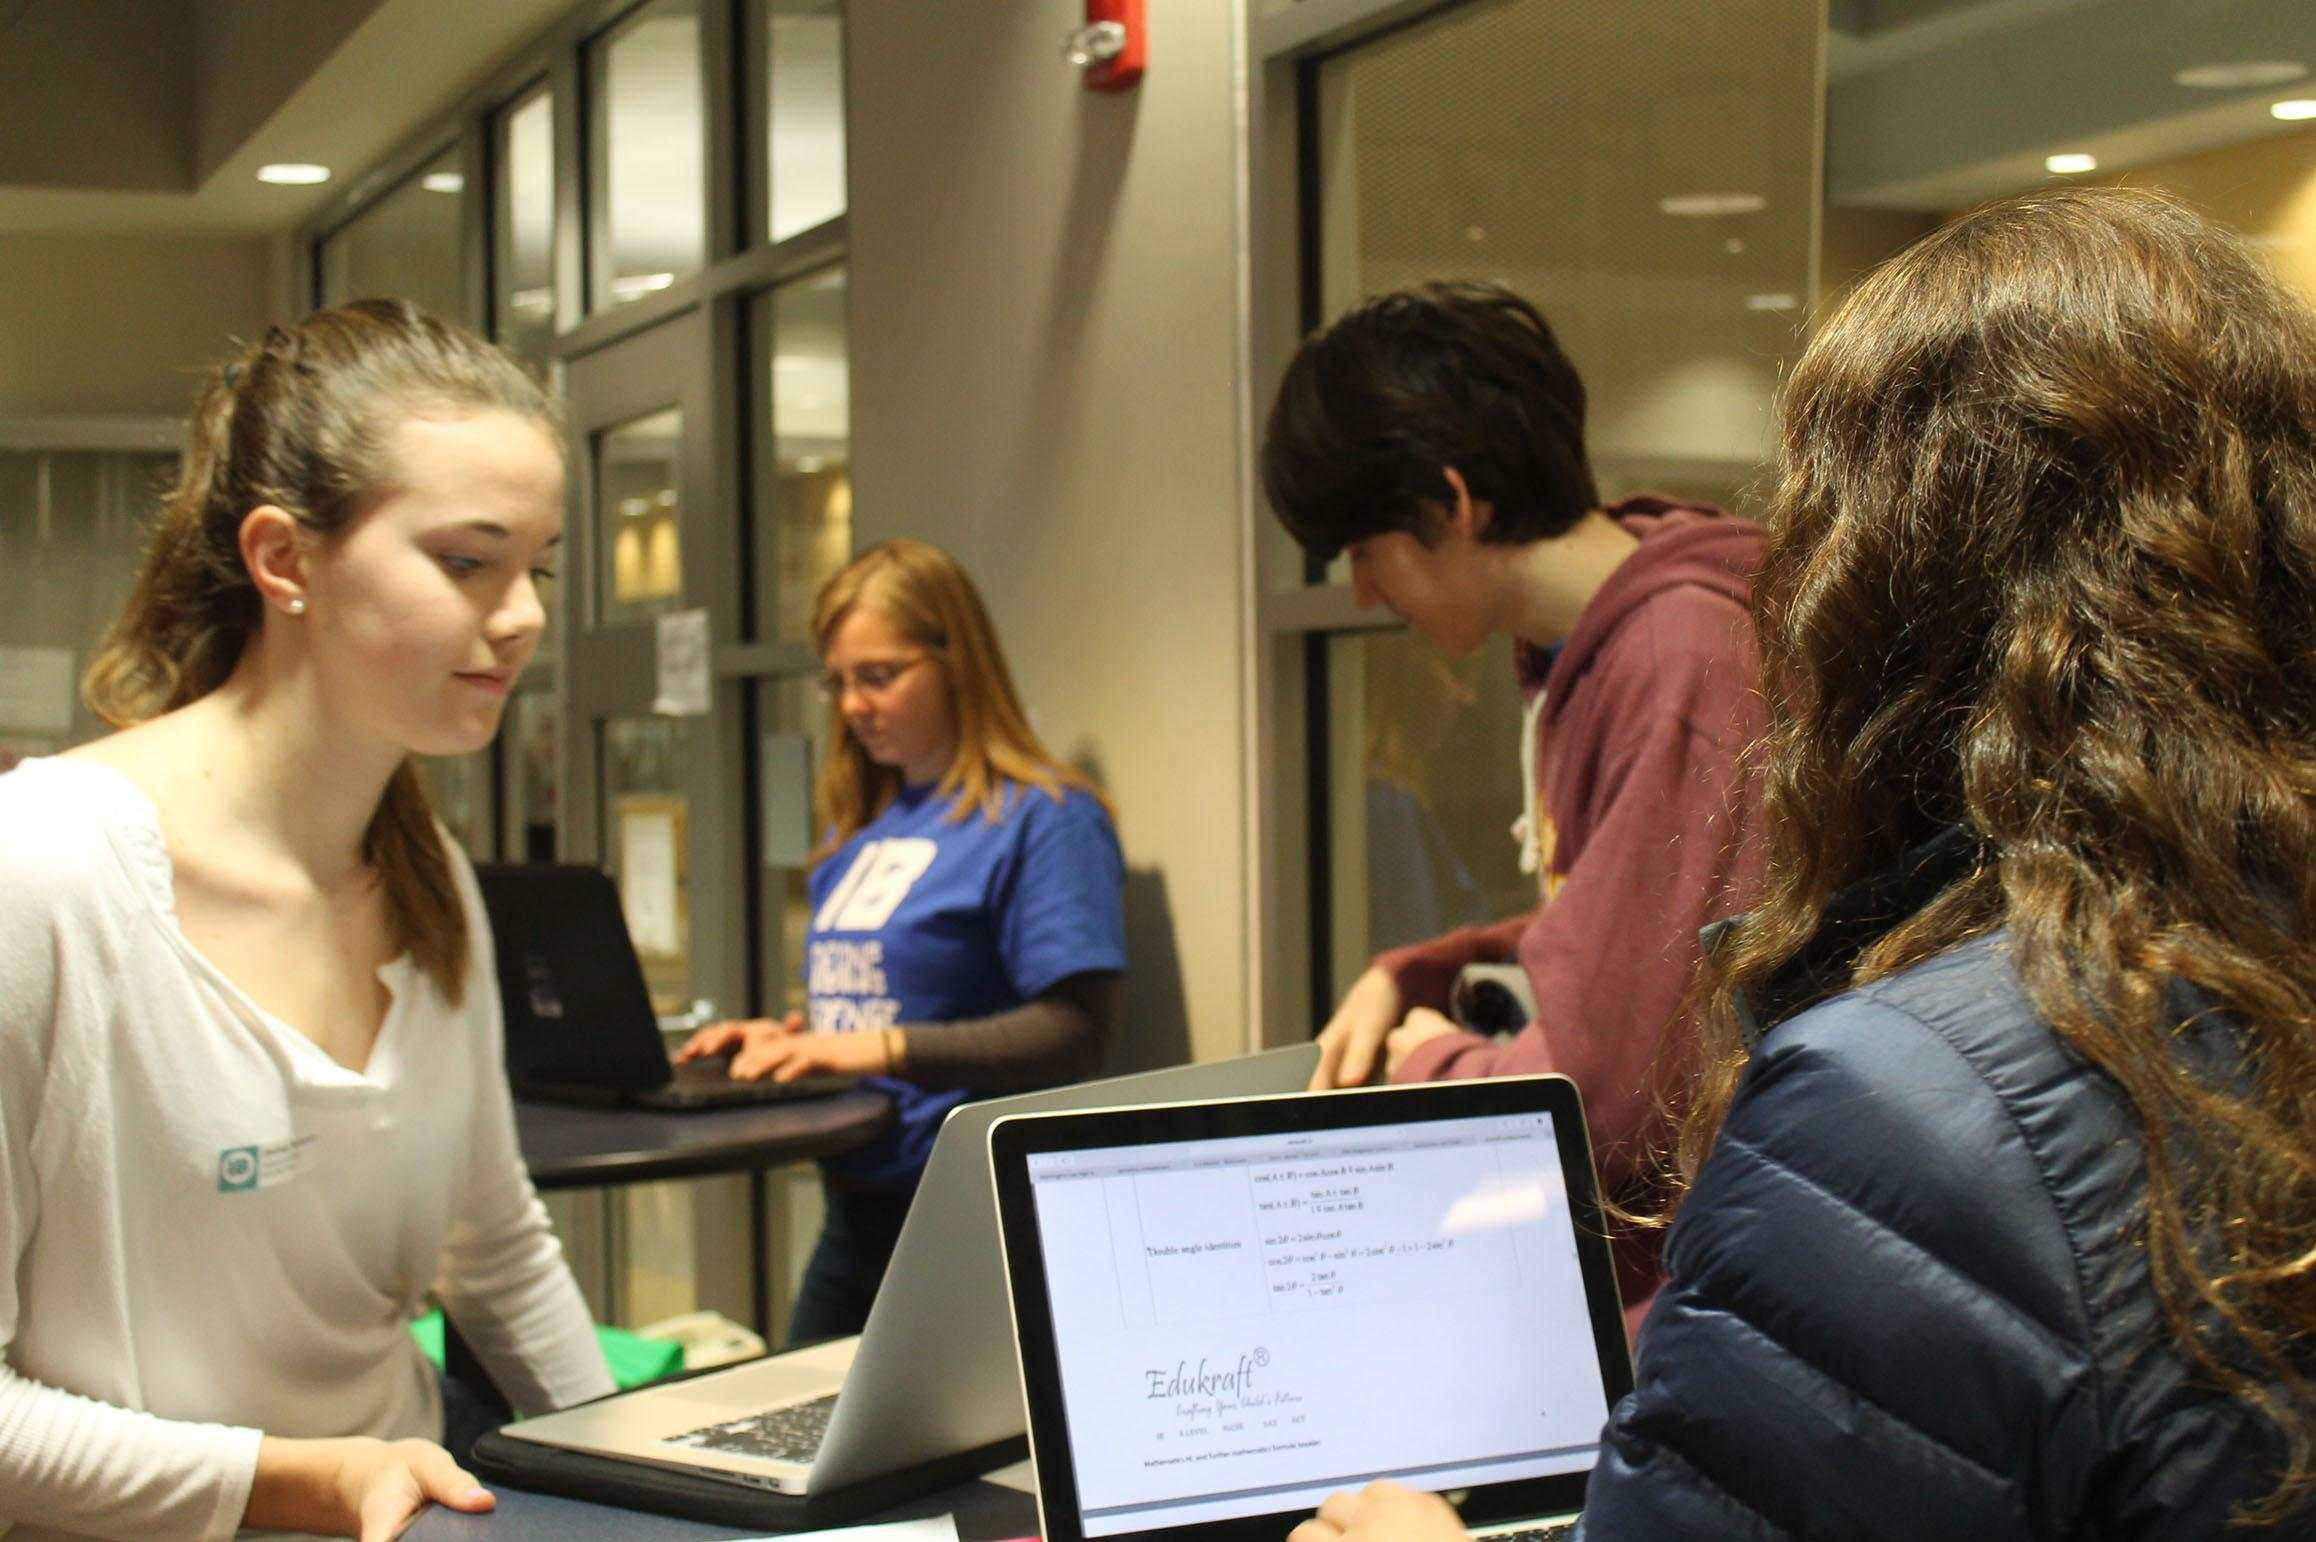 Junior Claire Pfeifer works with her group to help solve the school wifi issues.